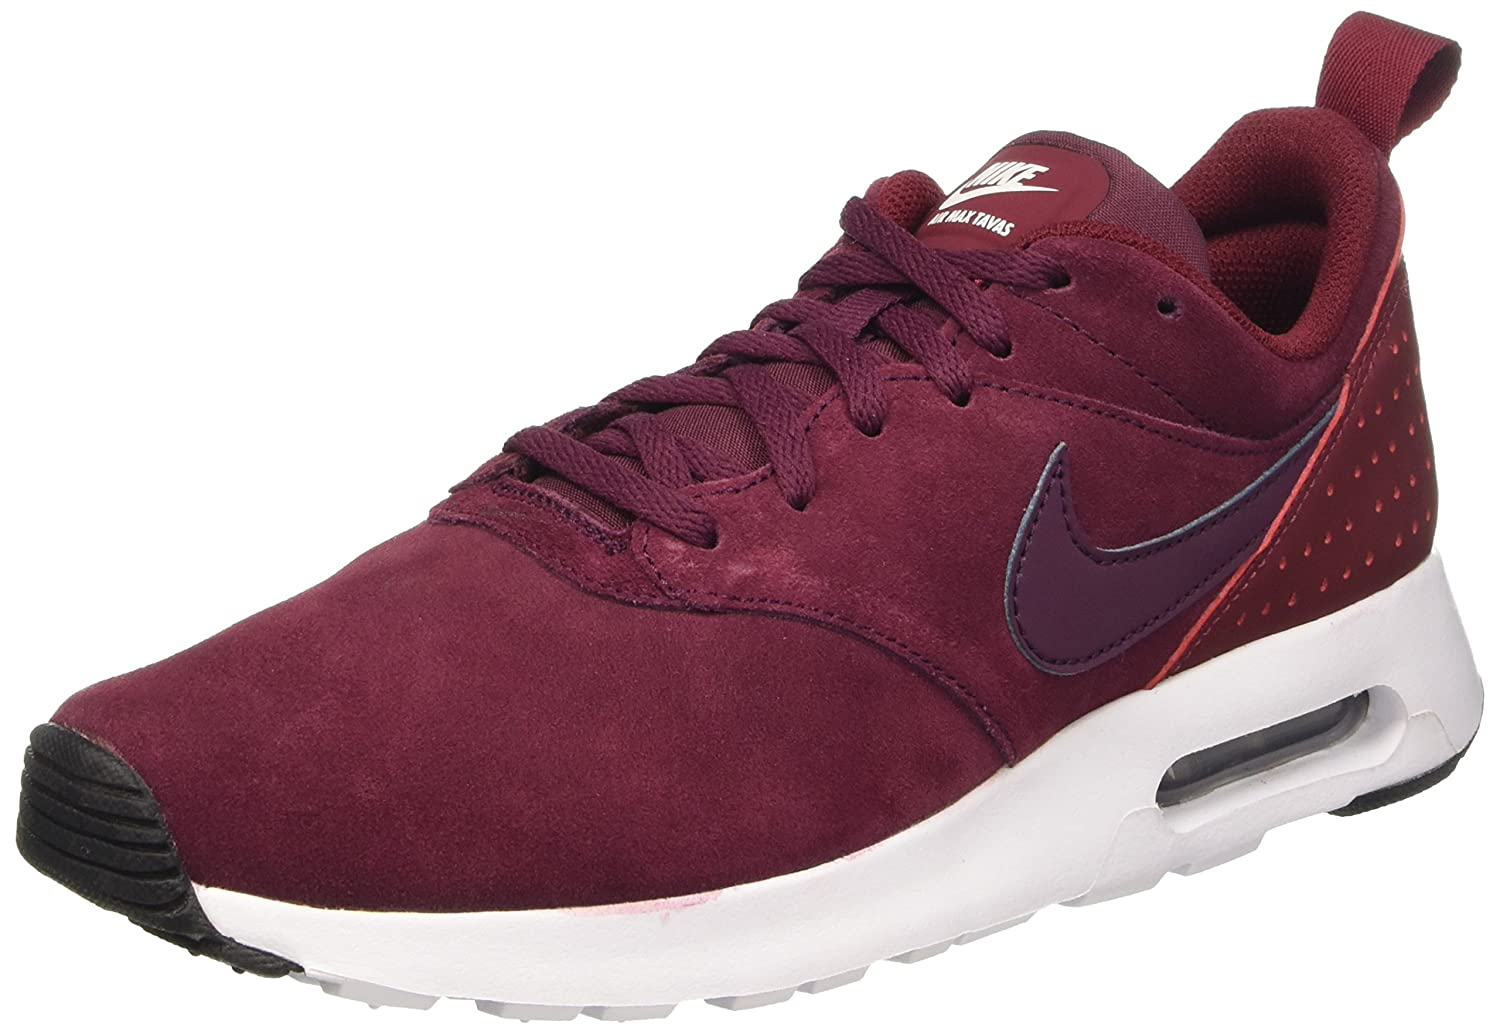 detailed look 0311a 63b5a Nike Air Max Tavas, Baskets Basses Homme lovely